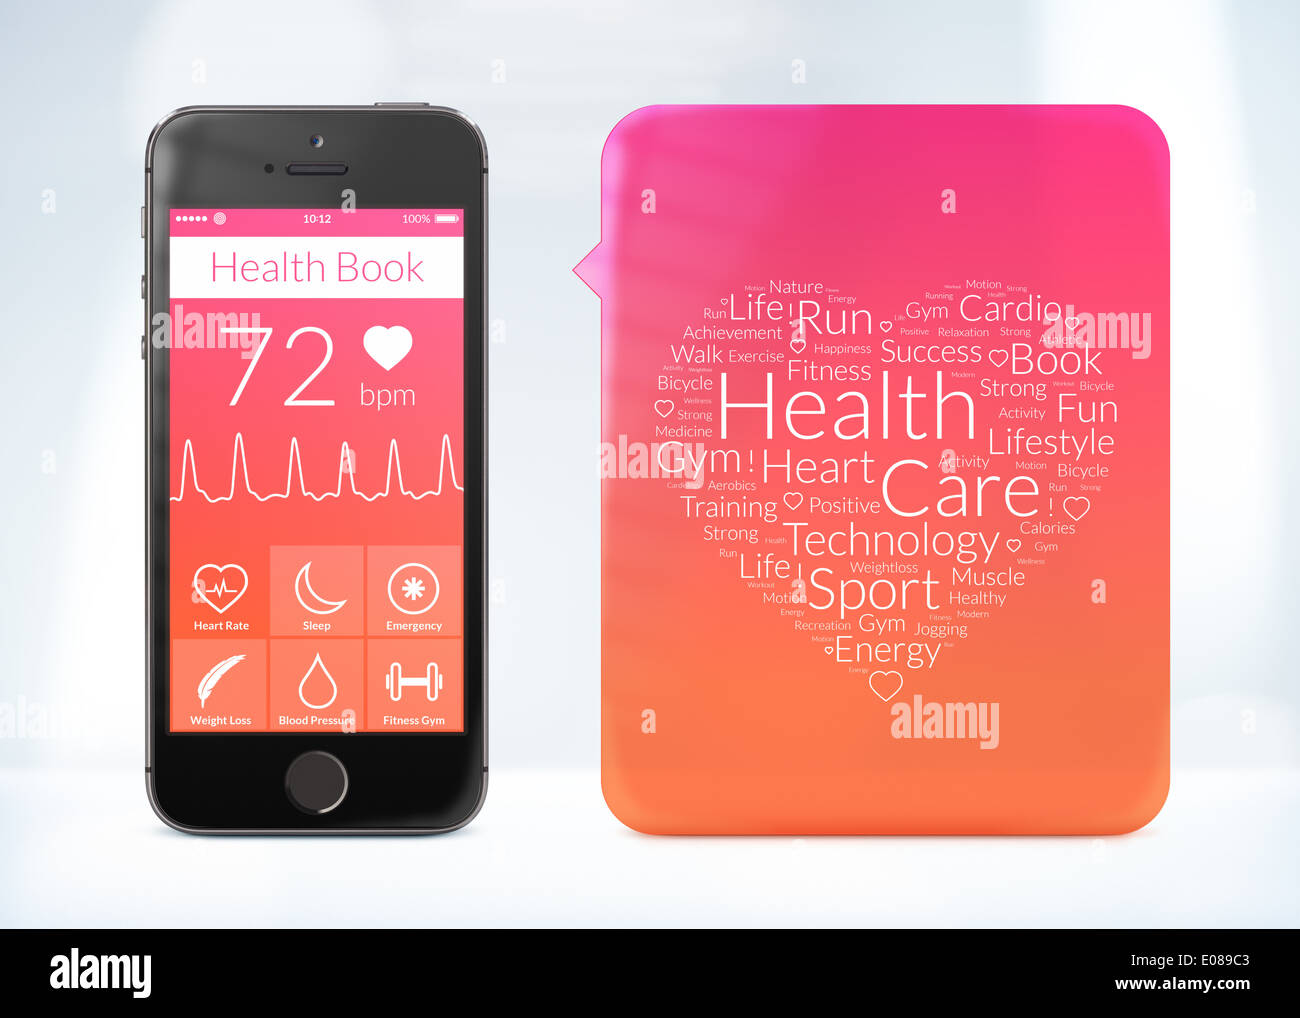 Directly front view of health book application for smartphone with word cloud sticker. - Stock Image